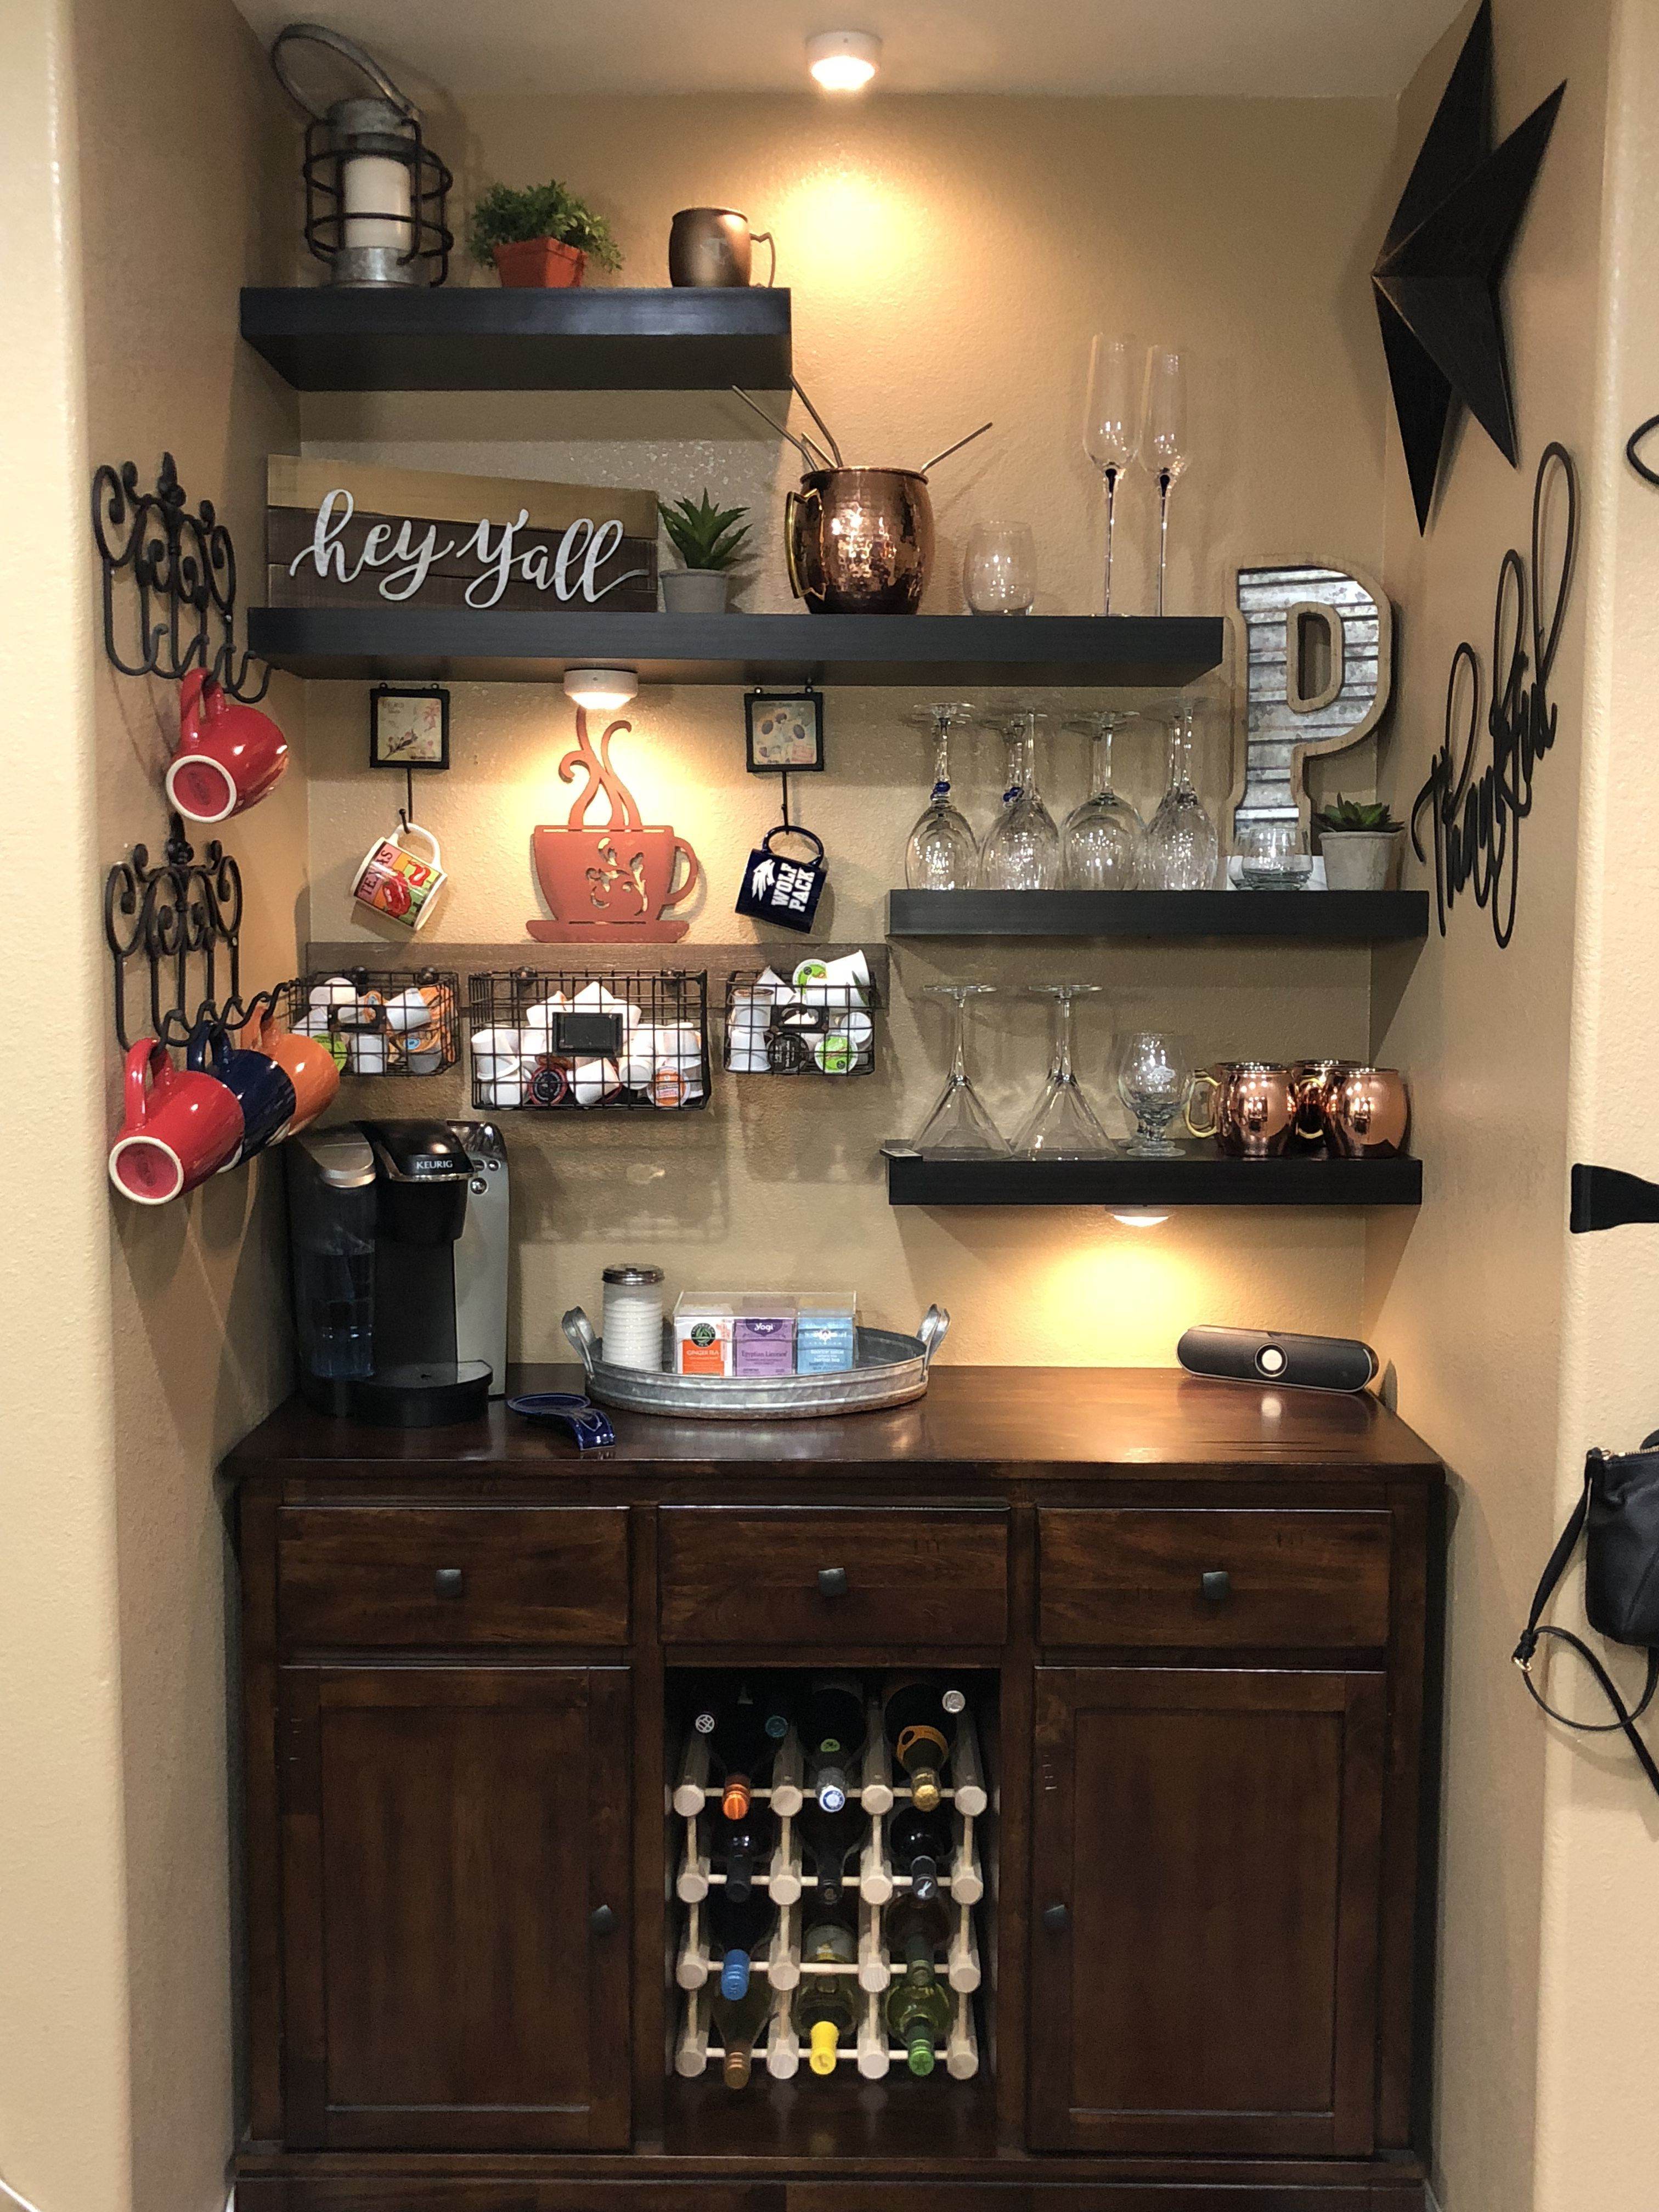 Created my coffee/wine bar! So pleased how it turned out ...